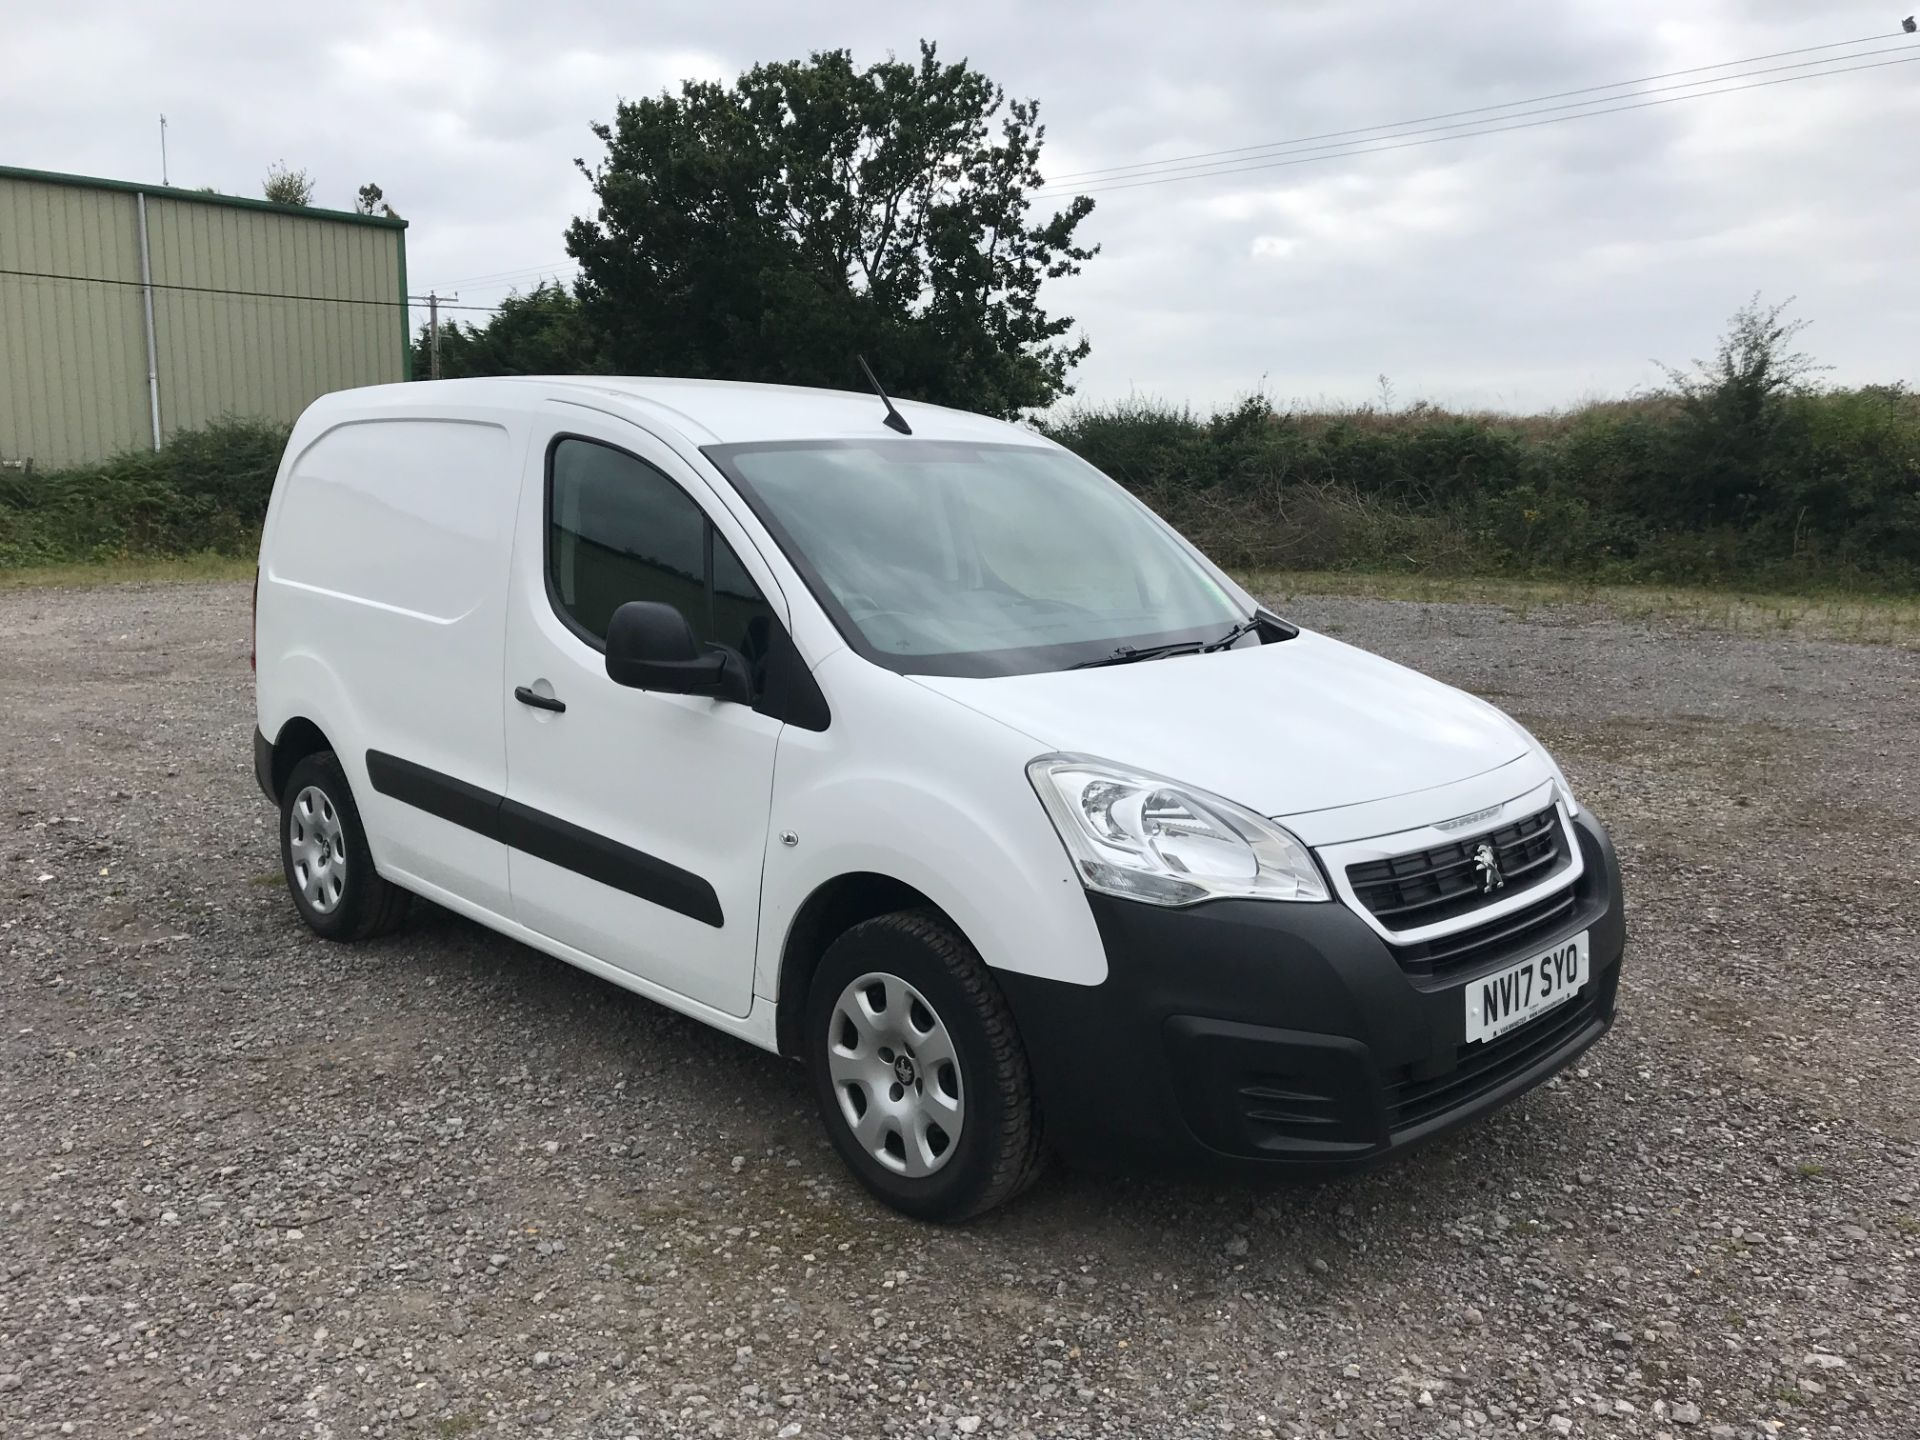 2017 Peugeot Partner L1 850 1.6 BLUEHDI 100 PROFESSIONAL (NON S/S)EURO 6 *Limited to 70MPH* (NV17SYO)